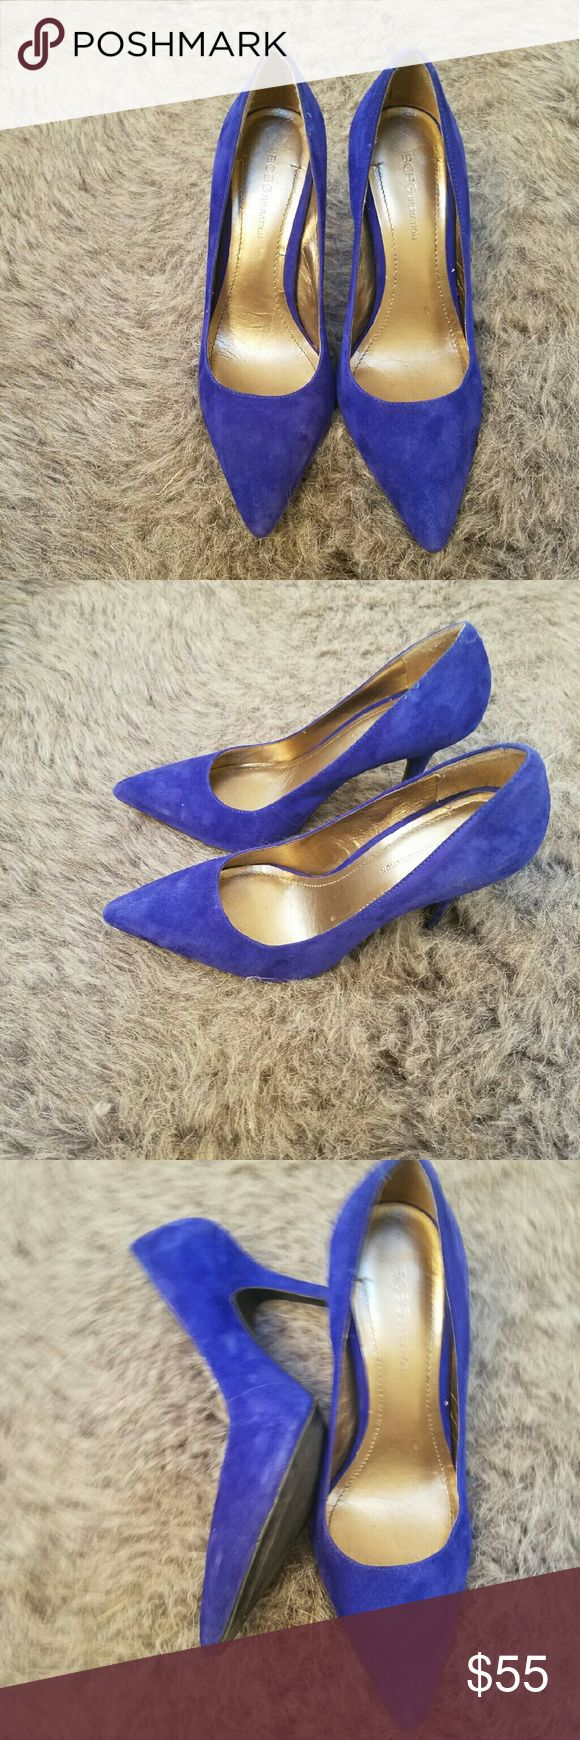 Blue Suede BCBG pumps Brand new beautiful suede BCBG pumps....only tried on around the house. Check out my other listing buy more and give a discount. BCBGeneration Shoes Heels